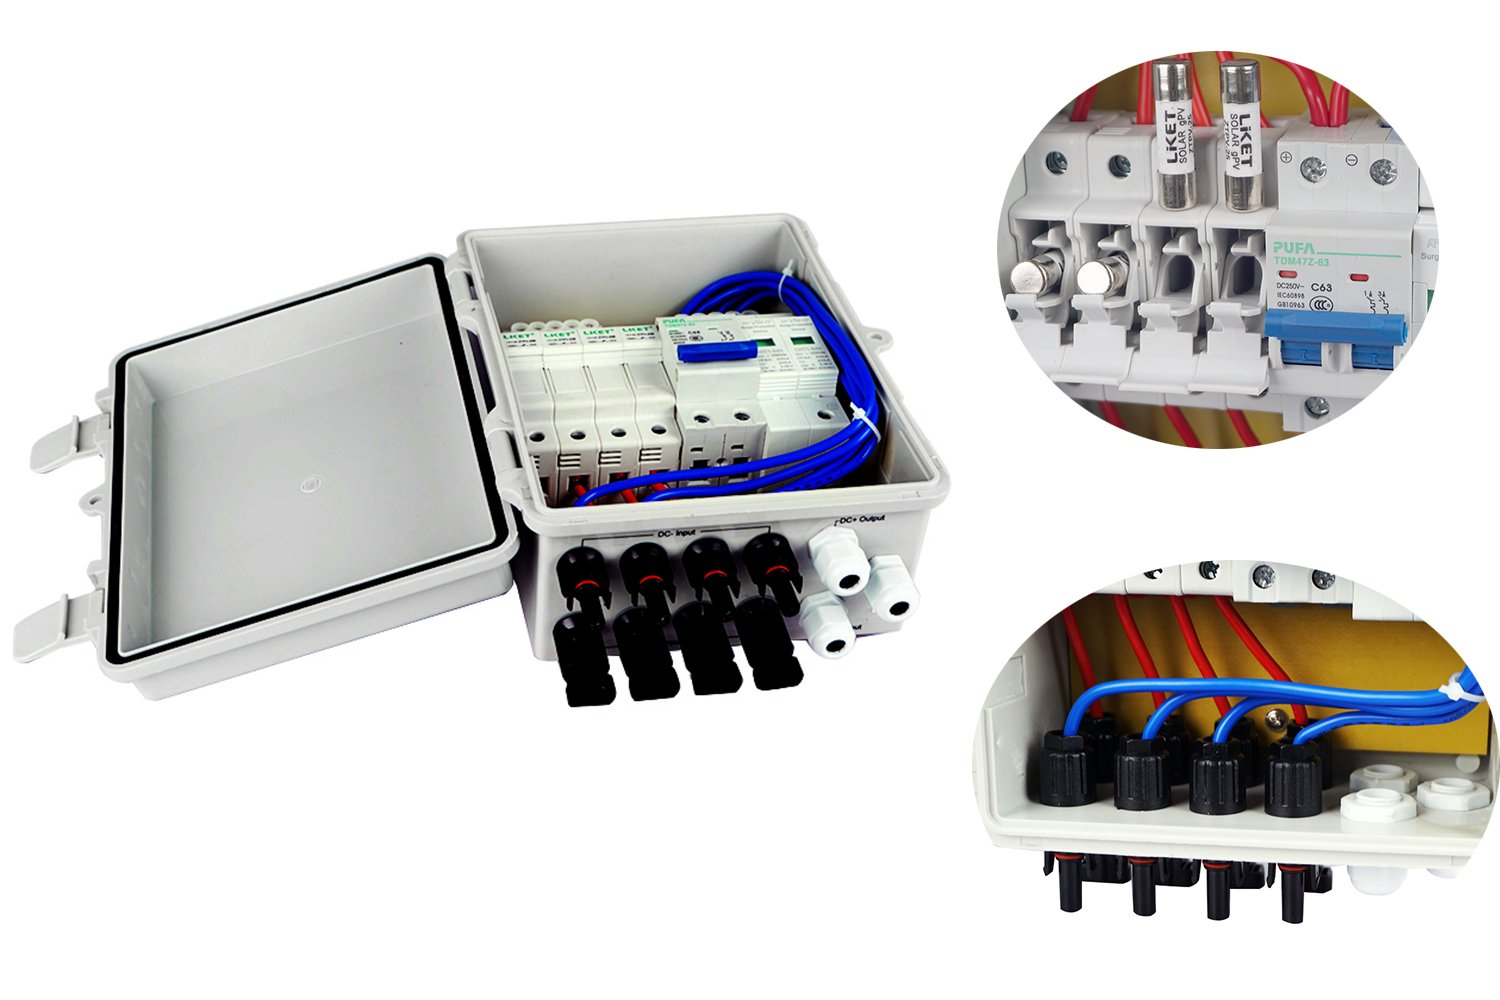 ECO LLC 4 String PV Combiner Box with Lighting Arrester, 10A Rated Current,Universal Solar Panel Connectors,Grounding Bus-Bar Ideal For Off-grid Solar System by ECO LLC (Image #2)